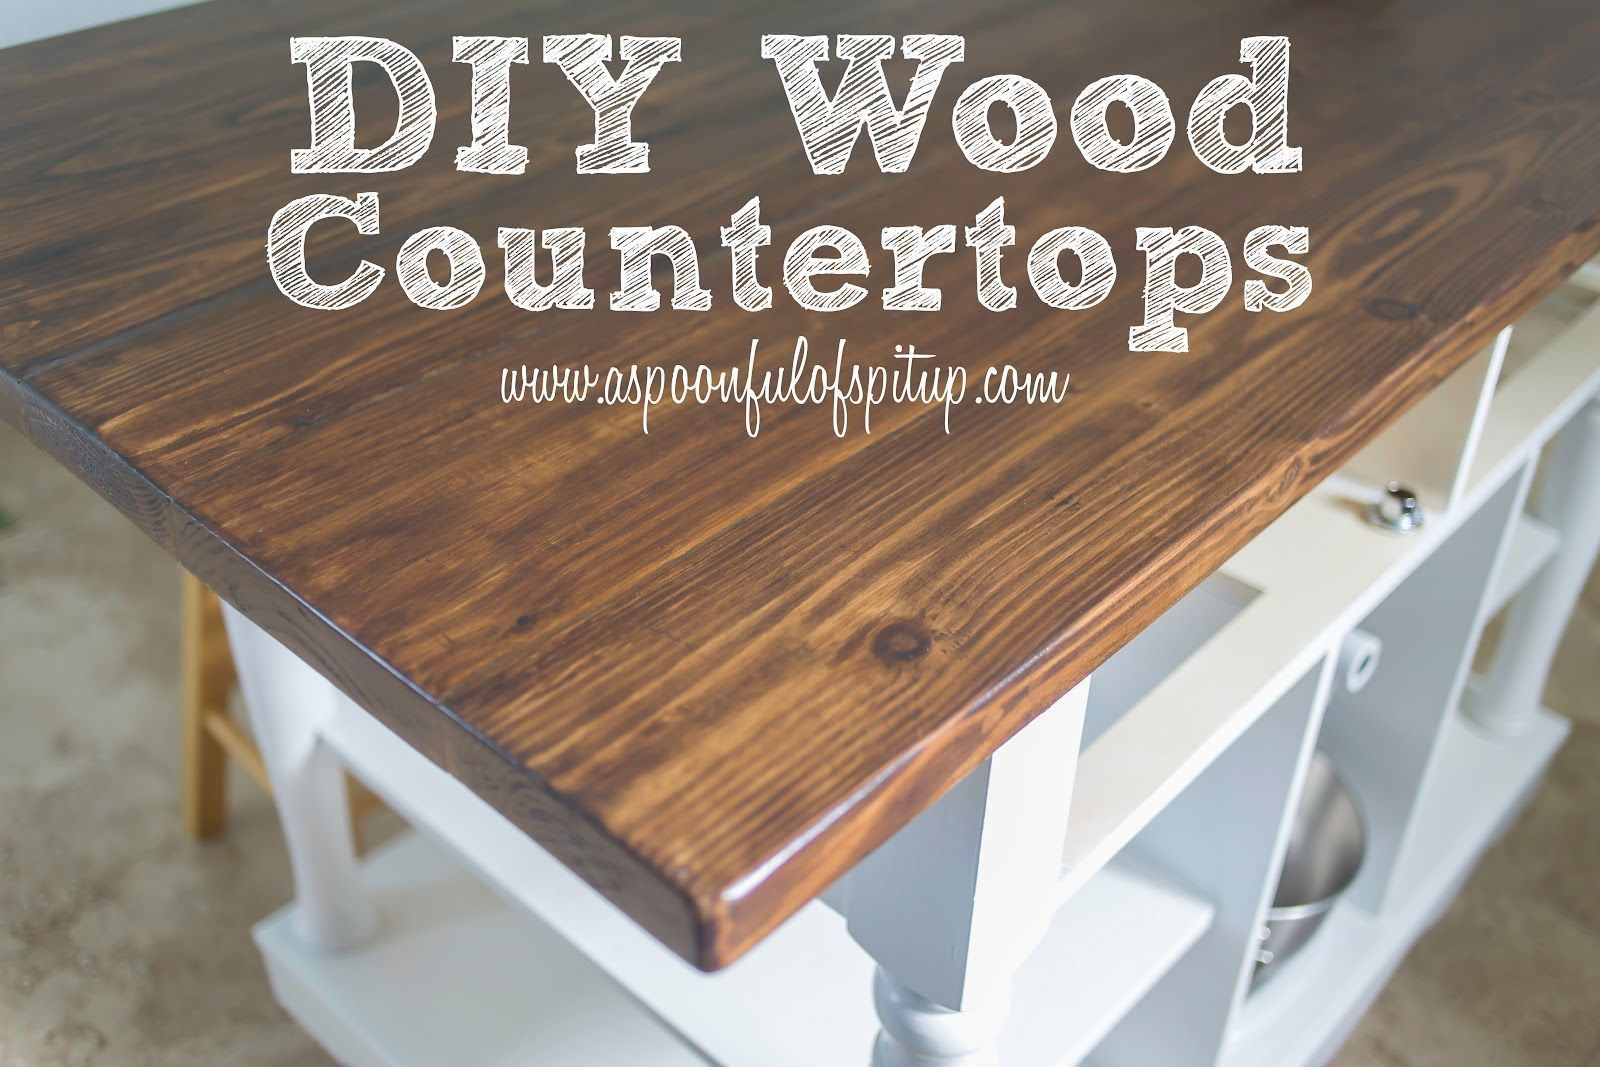 Diy Wood Butcher Block Countertops Diy Wood Countertops